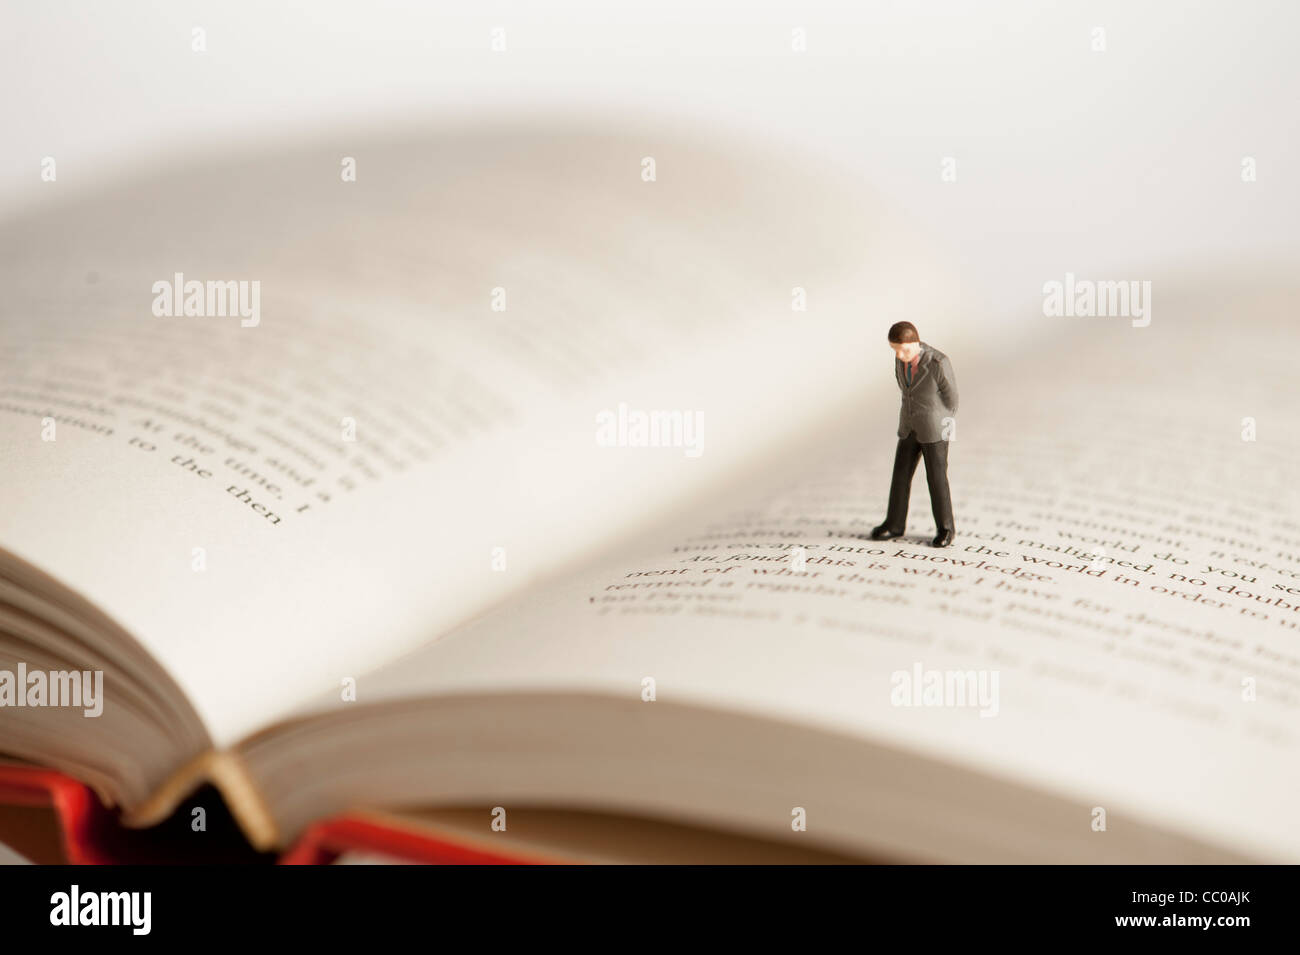 a small figure of a man walking on an open book - conceptual image for literacy and reading - Stock Image